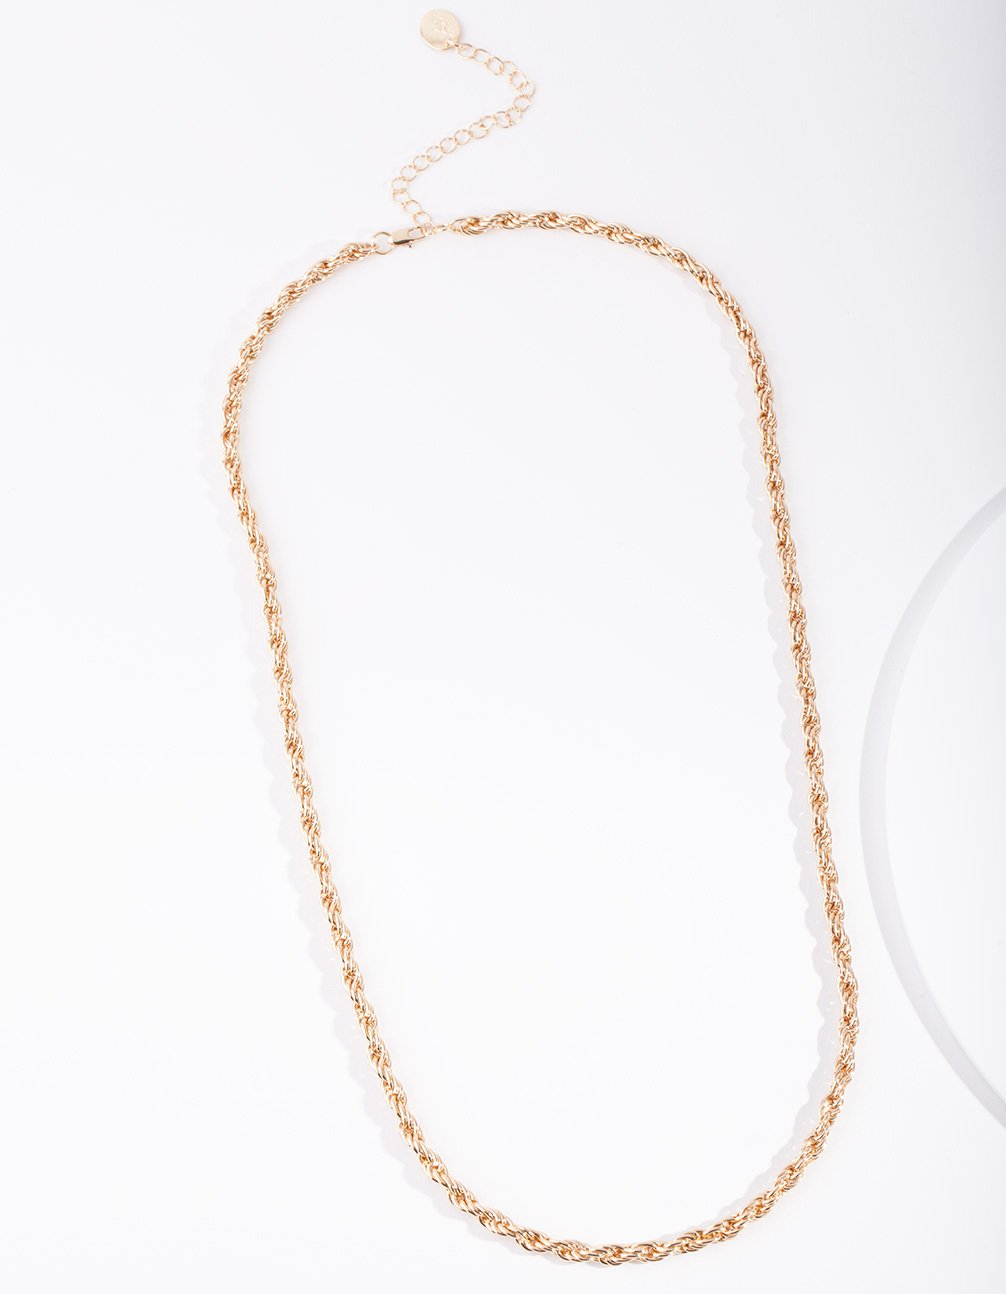 Real Gold Plated 60cm Thick Rope Necklace